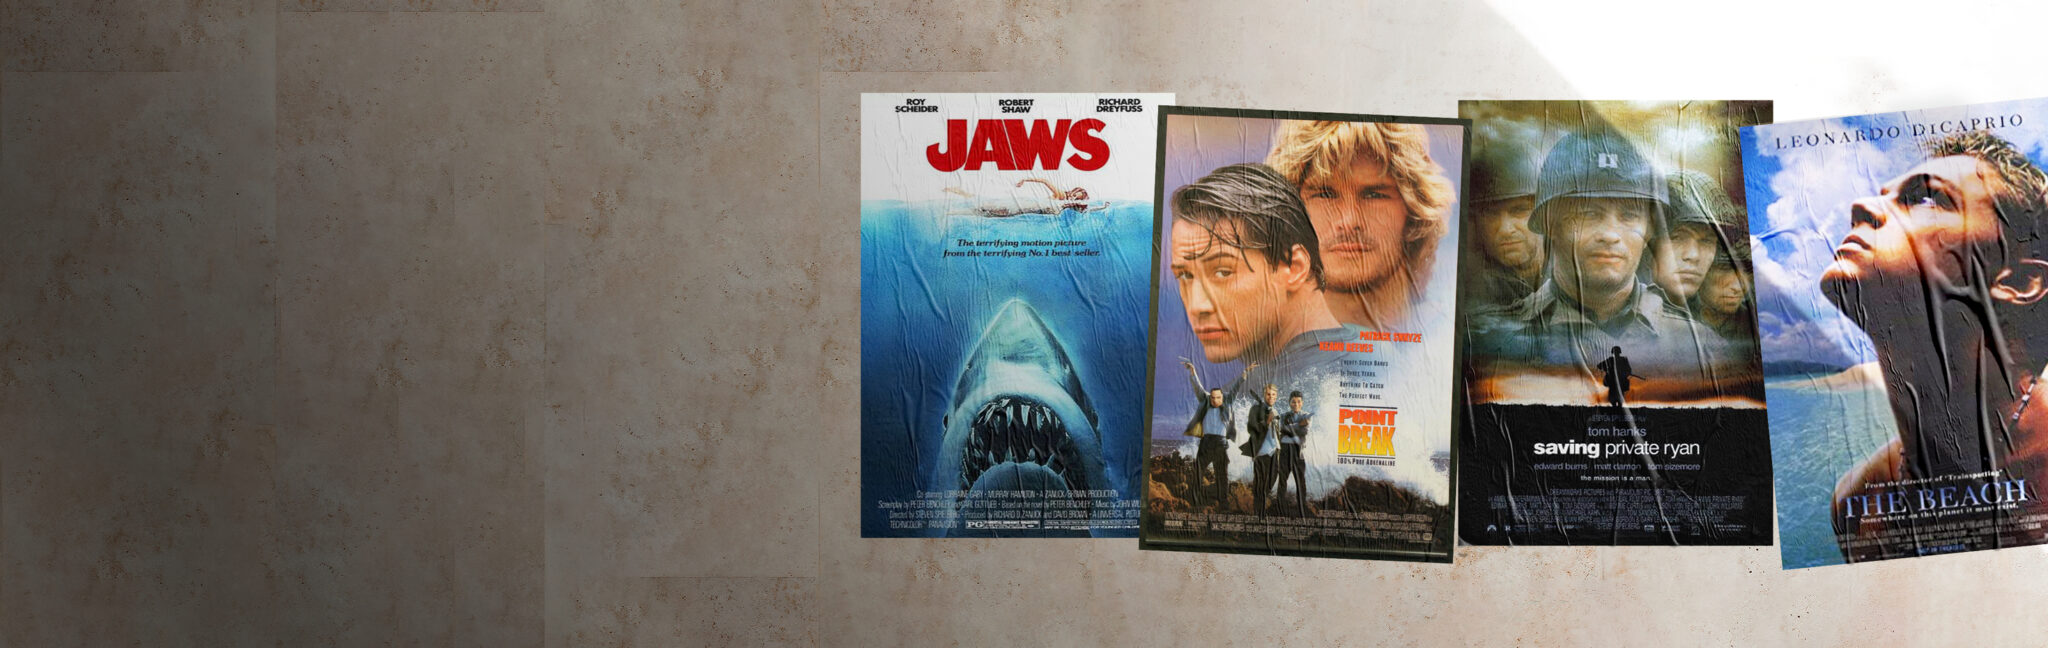 The best beach films of all time